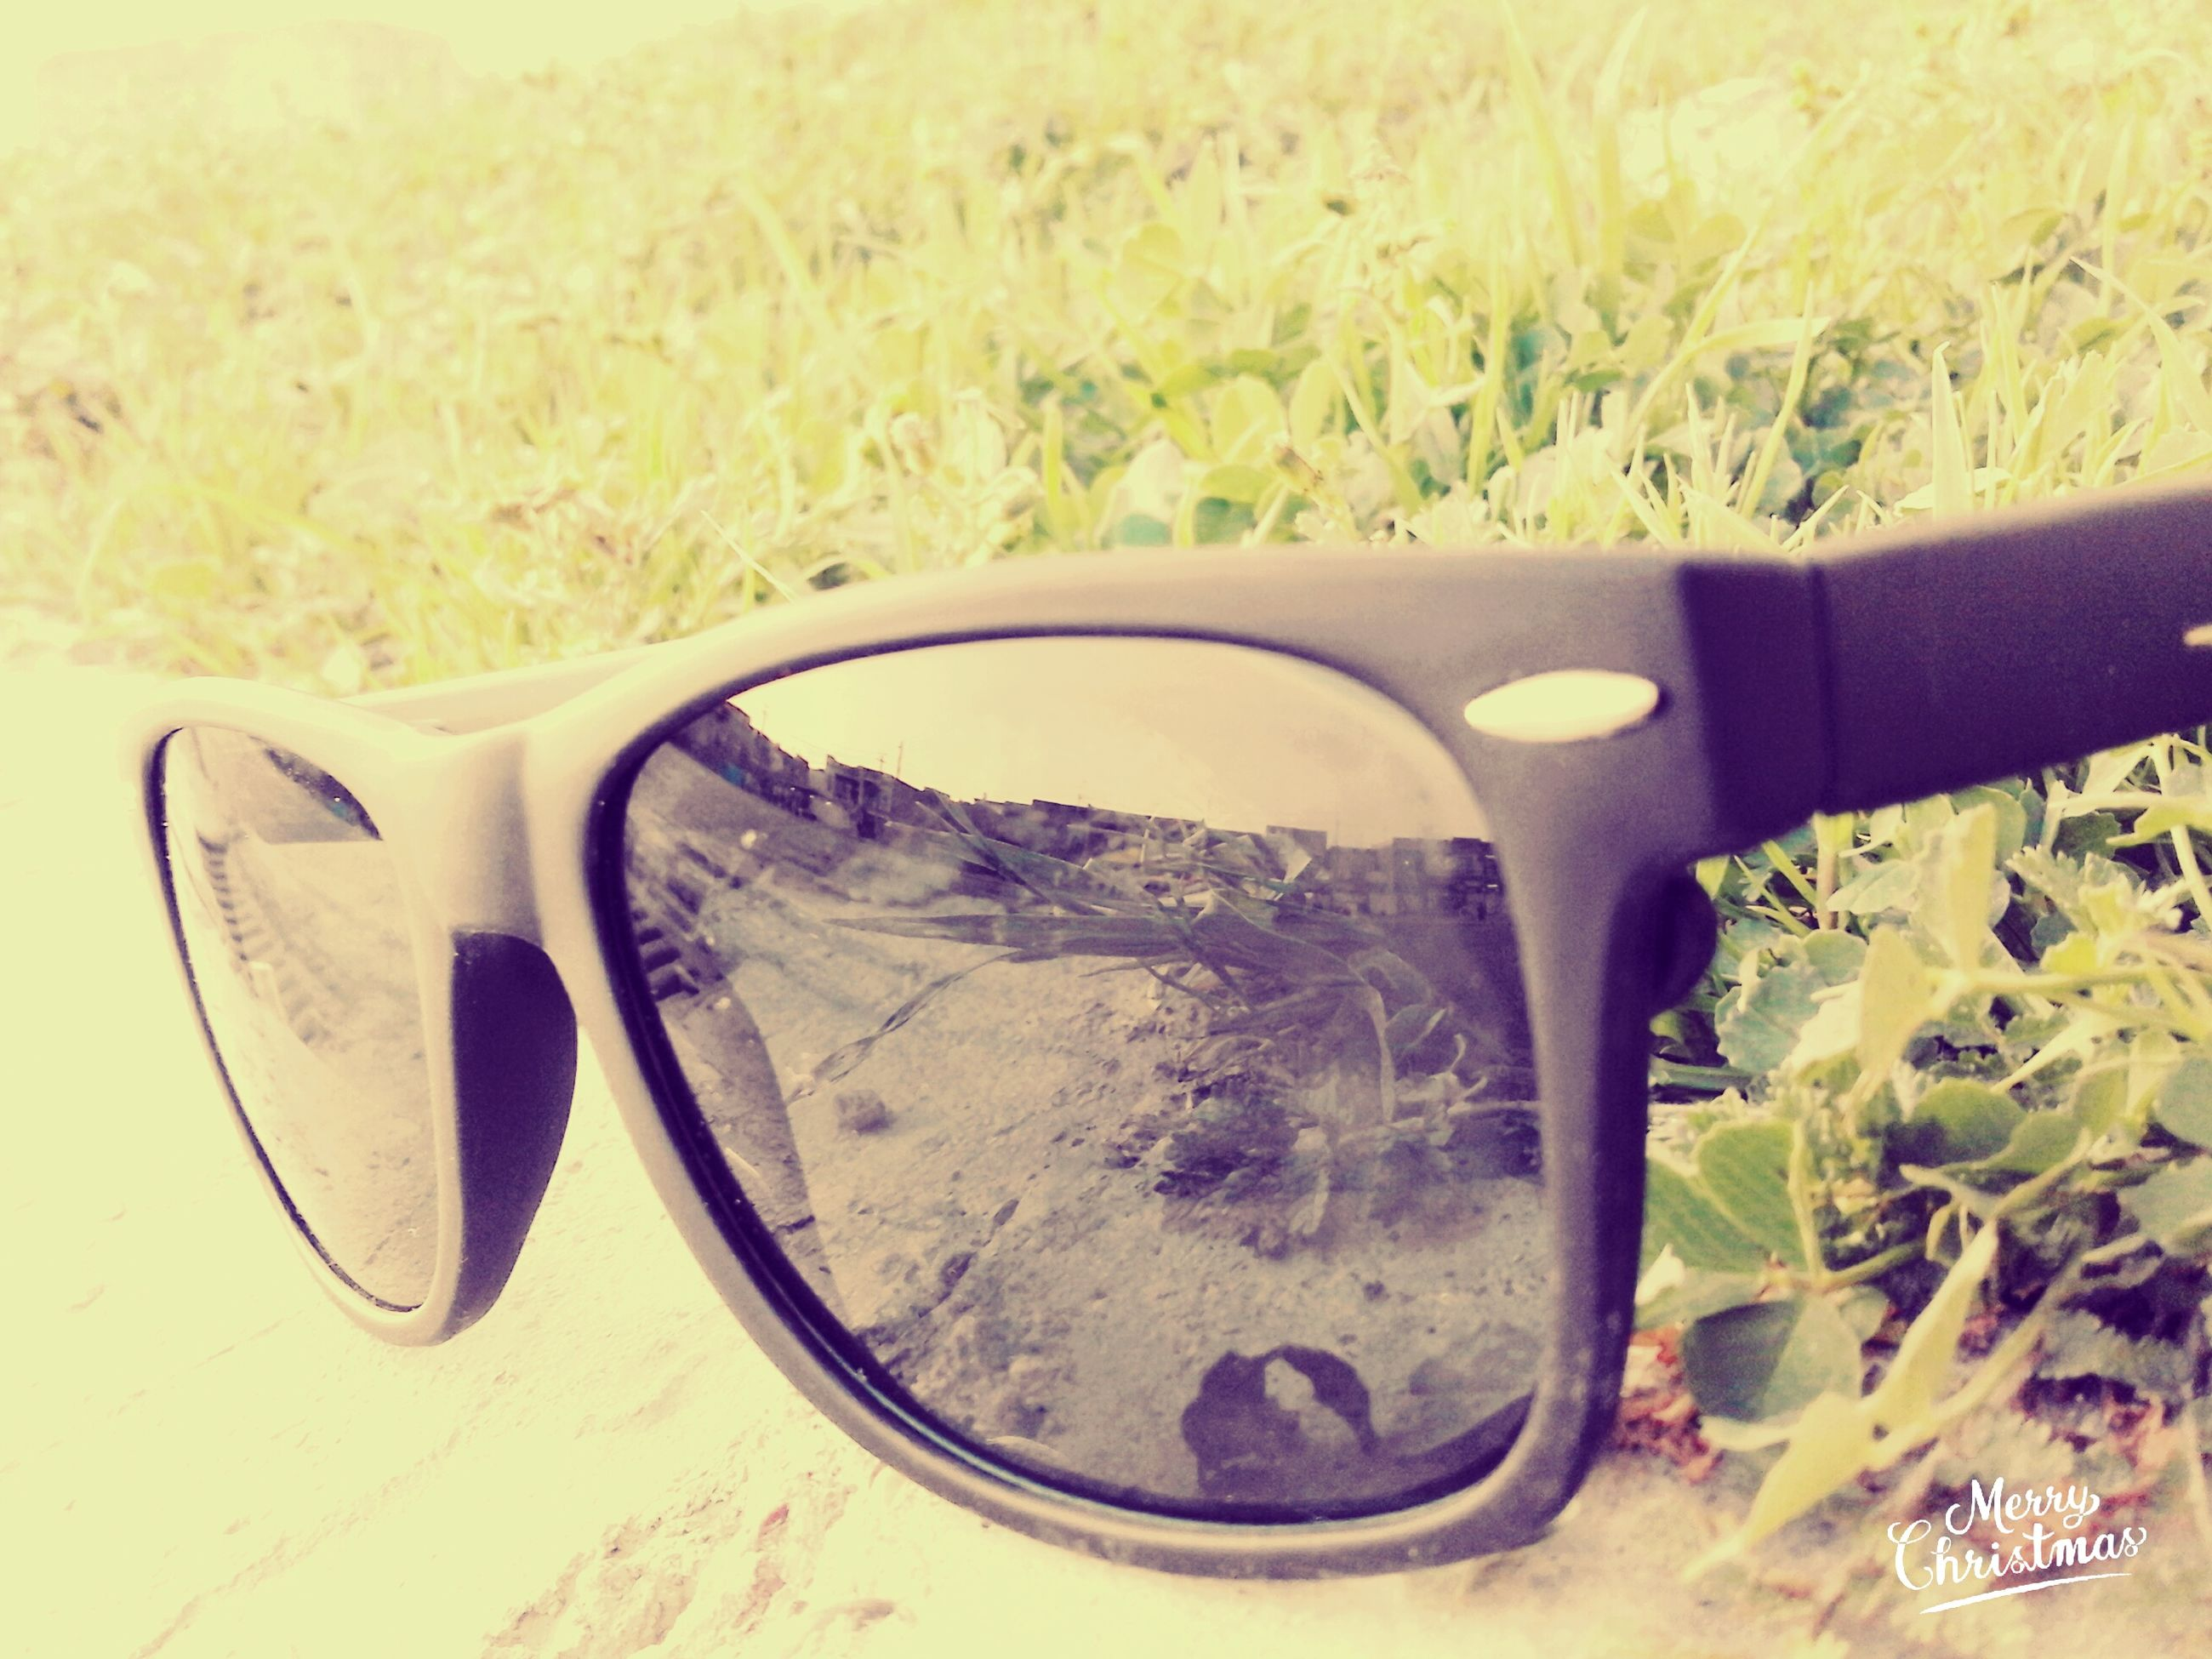 mode of transport, transportation, grass, land vehicle, car, reflection, field, close-up, side-view mirror, part of, sunglasses, glass - material, transparent, day, indoors, grassy, vehicle interior, cropped, mirror, no people